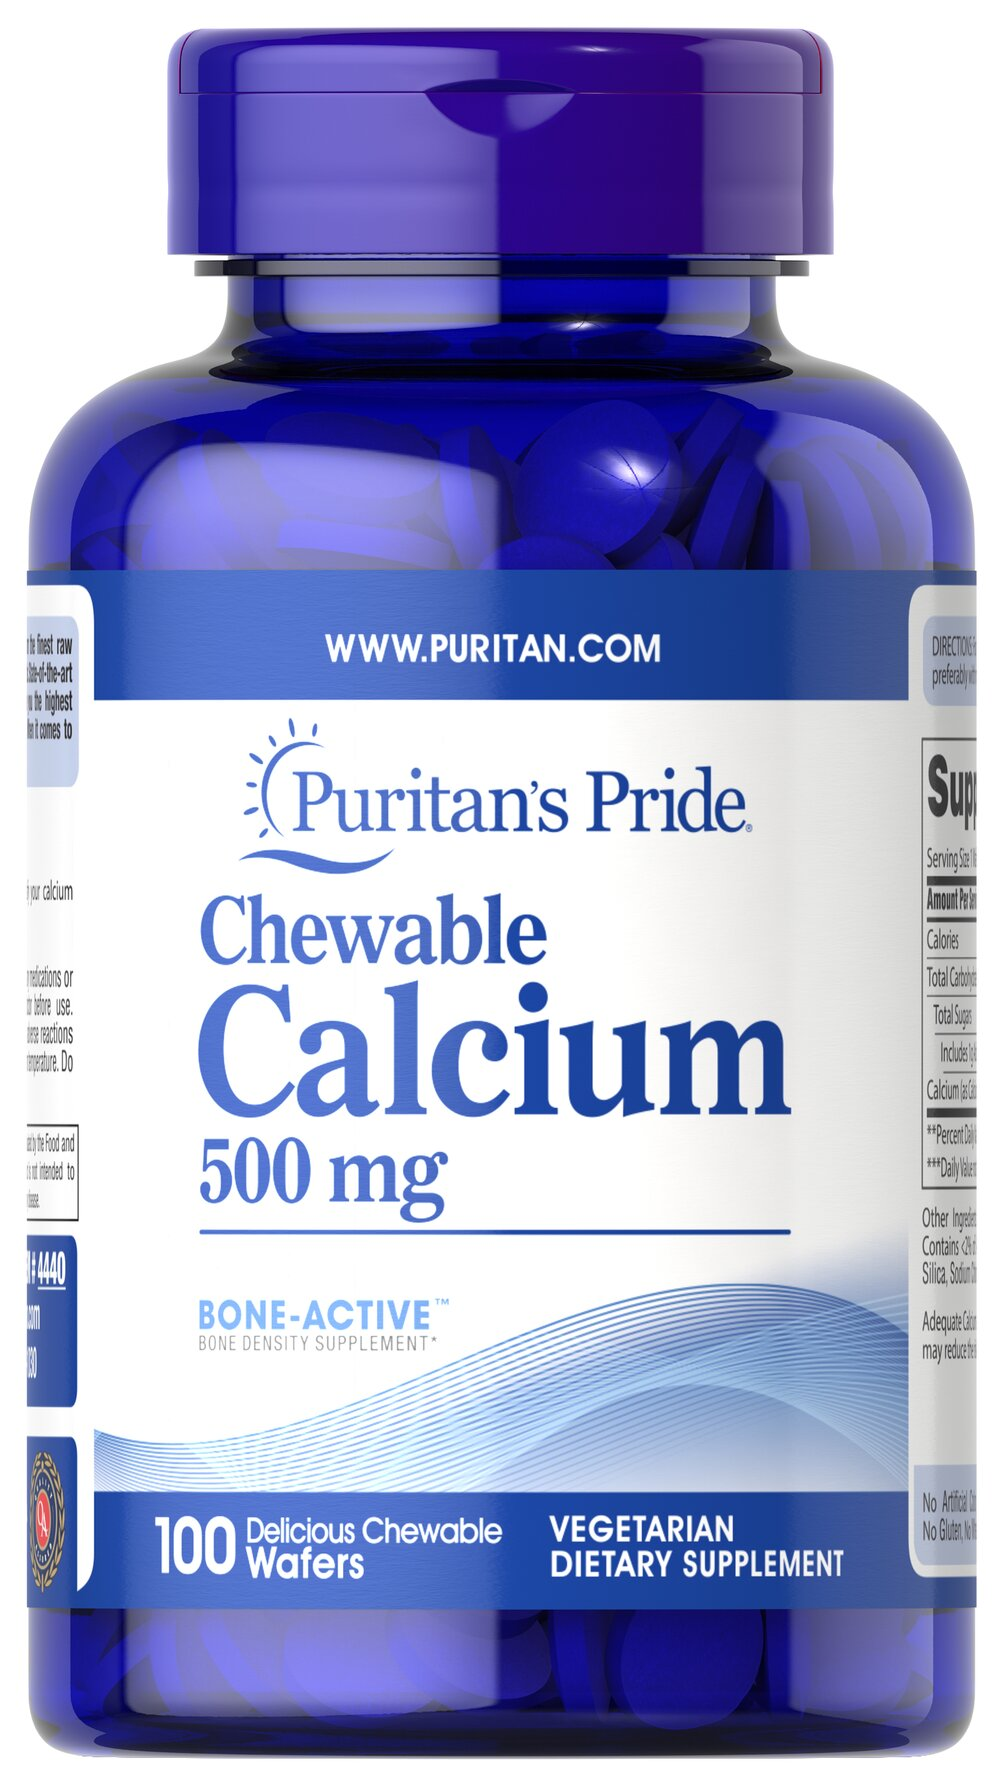 Chewable Calcium 500 mg <p>Supports Bone Health**</p><p>Many factors contribute to the development of osteoporosis including sex, race, age, and hormonal status. It's important to remember that everyone loses bone mass with age. Regular exercise, a healthy diet and adequate Calcium intake help maintain good bone health and may reduce the high risk of osteoporosis later in life.</p> 100 Chewables 500 mg $10.79